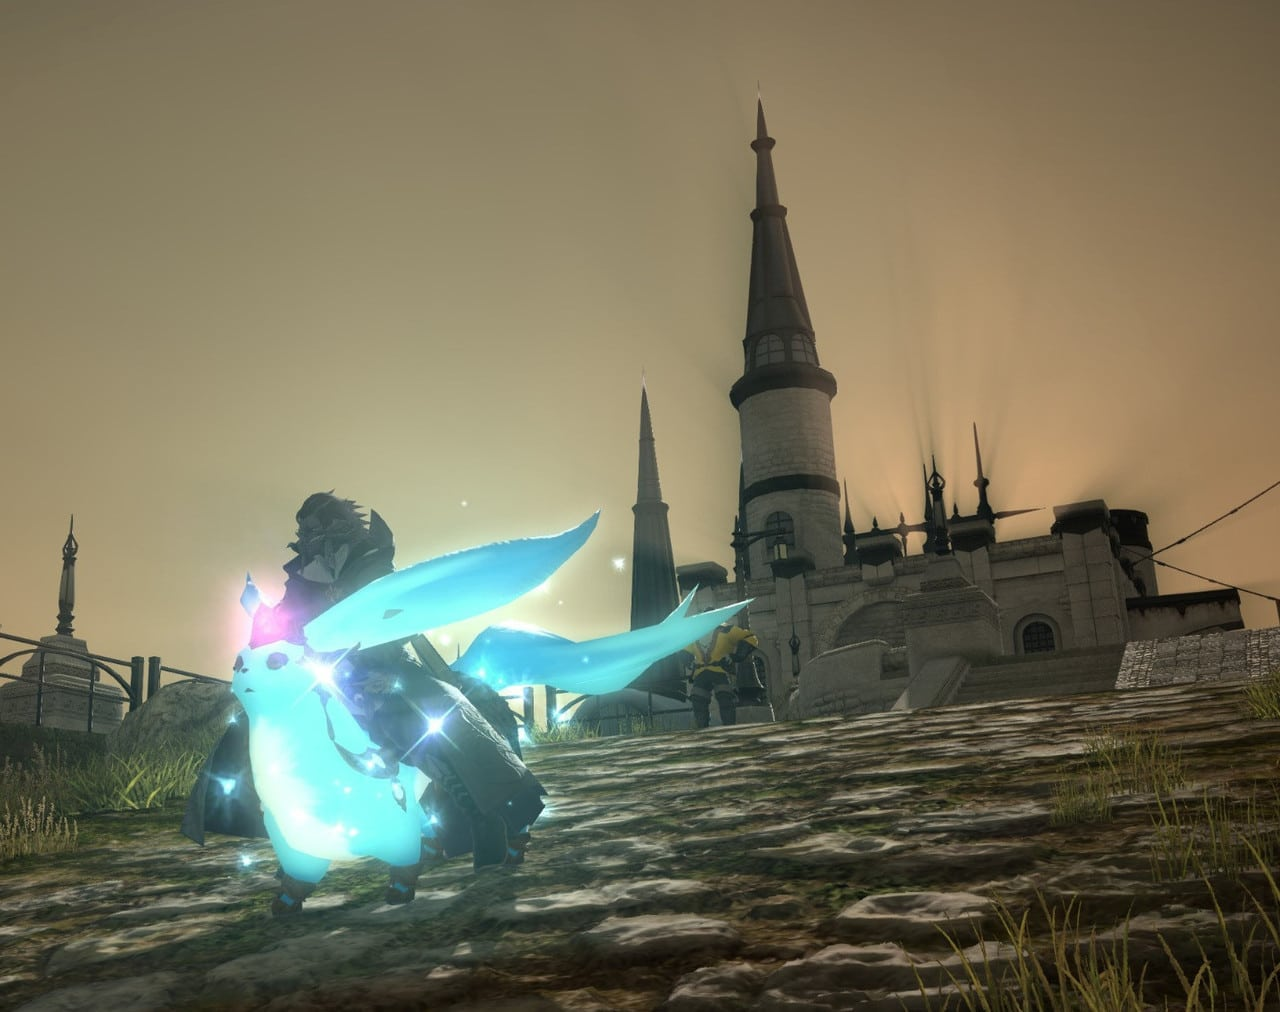 FINAL FANTASY XIV character on a glowing blue mouse/fox creature, with a castle in the background.